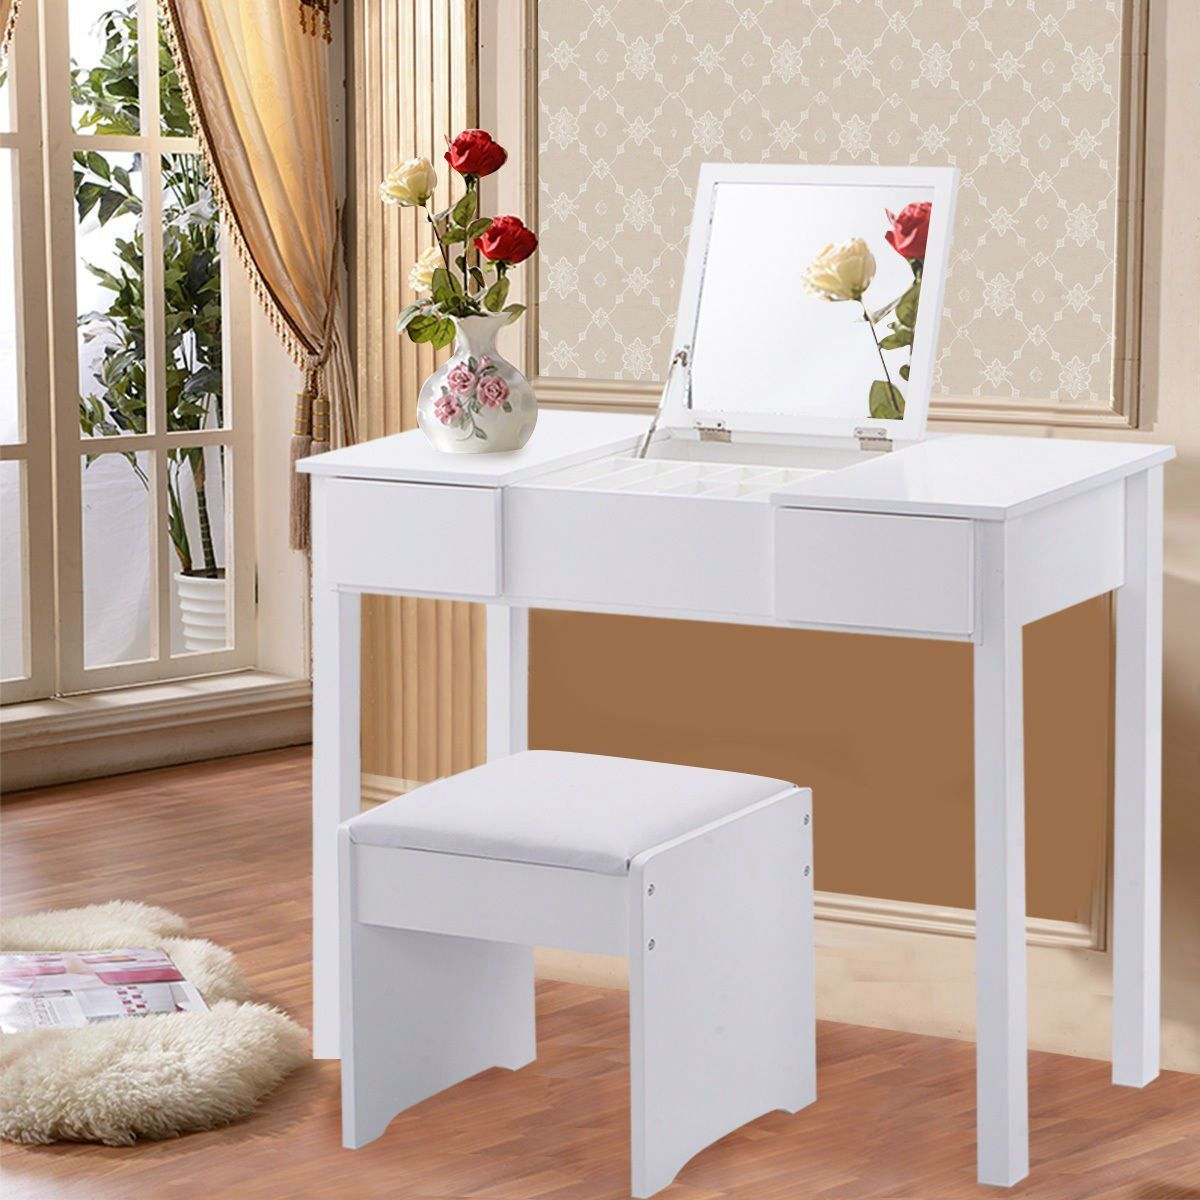 modern bedroom vanity table set in white with mirror and